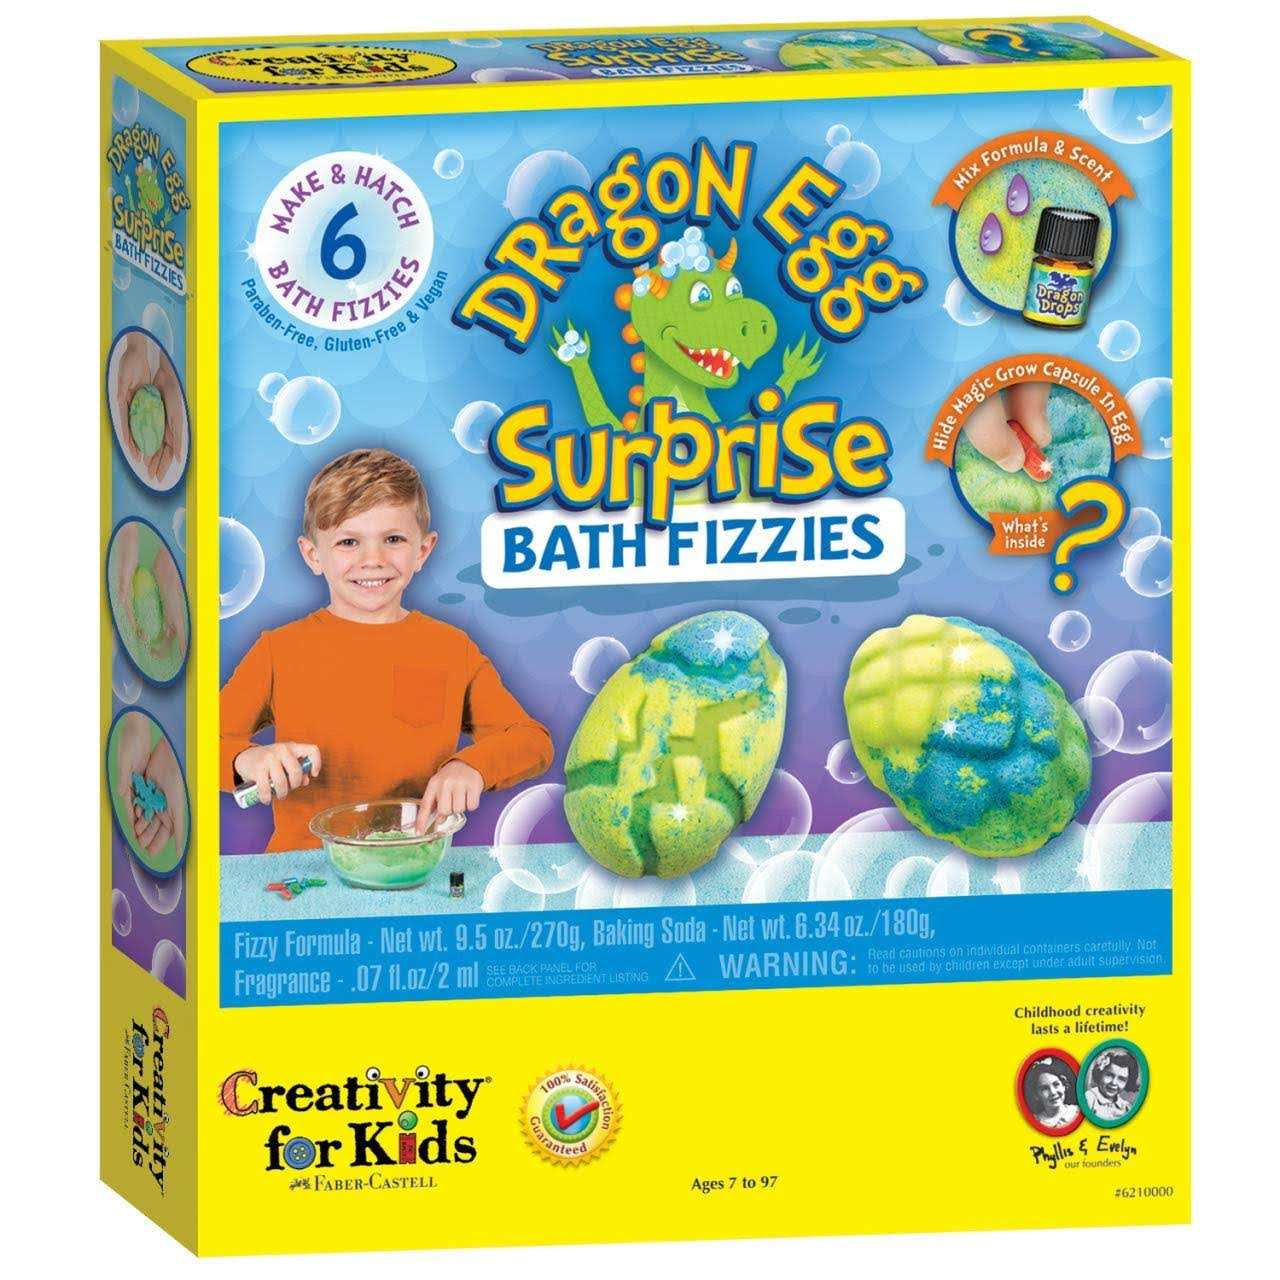 Creativity for Kids Dragon Egg Surprise Bath Fizzies Kit